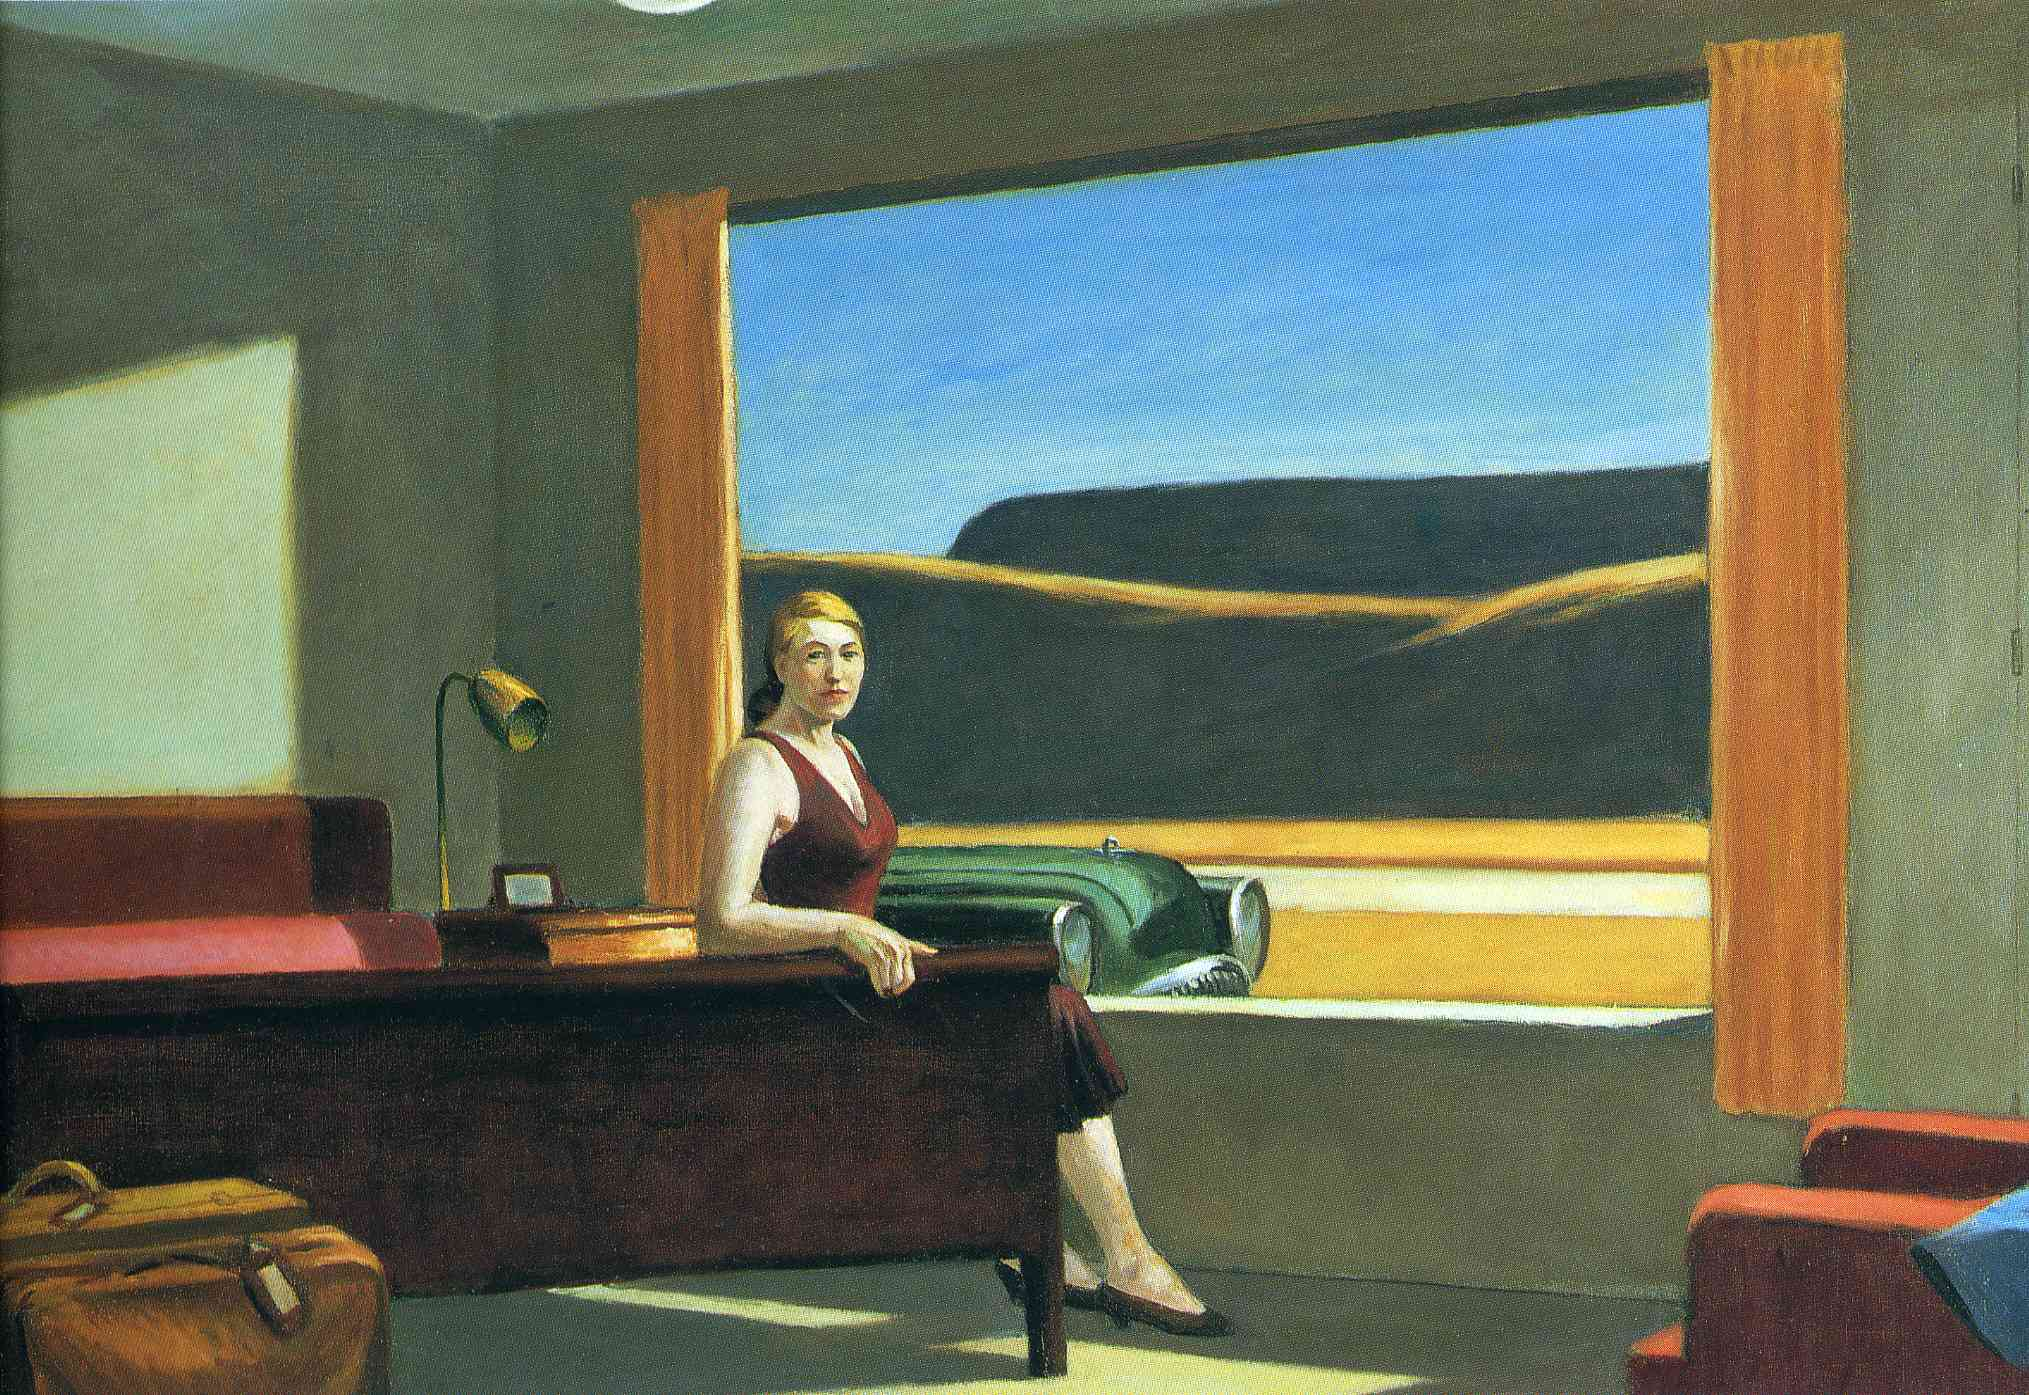 Edward hopper urban spaces interior landscapes tim haslett 39 s blog - Edward hopper maison ...